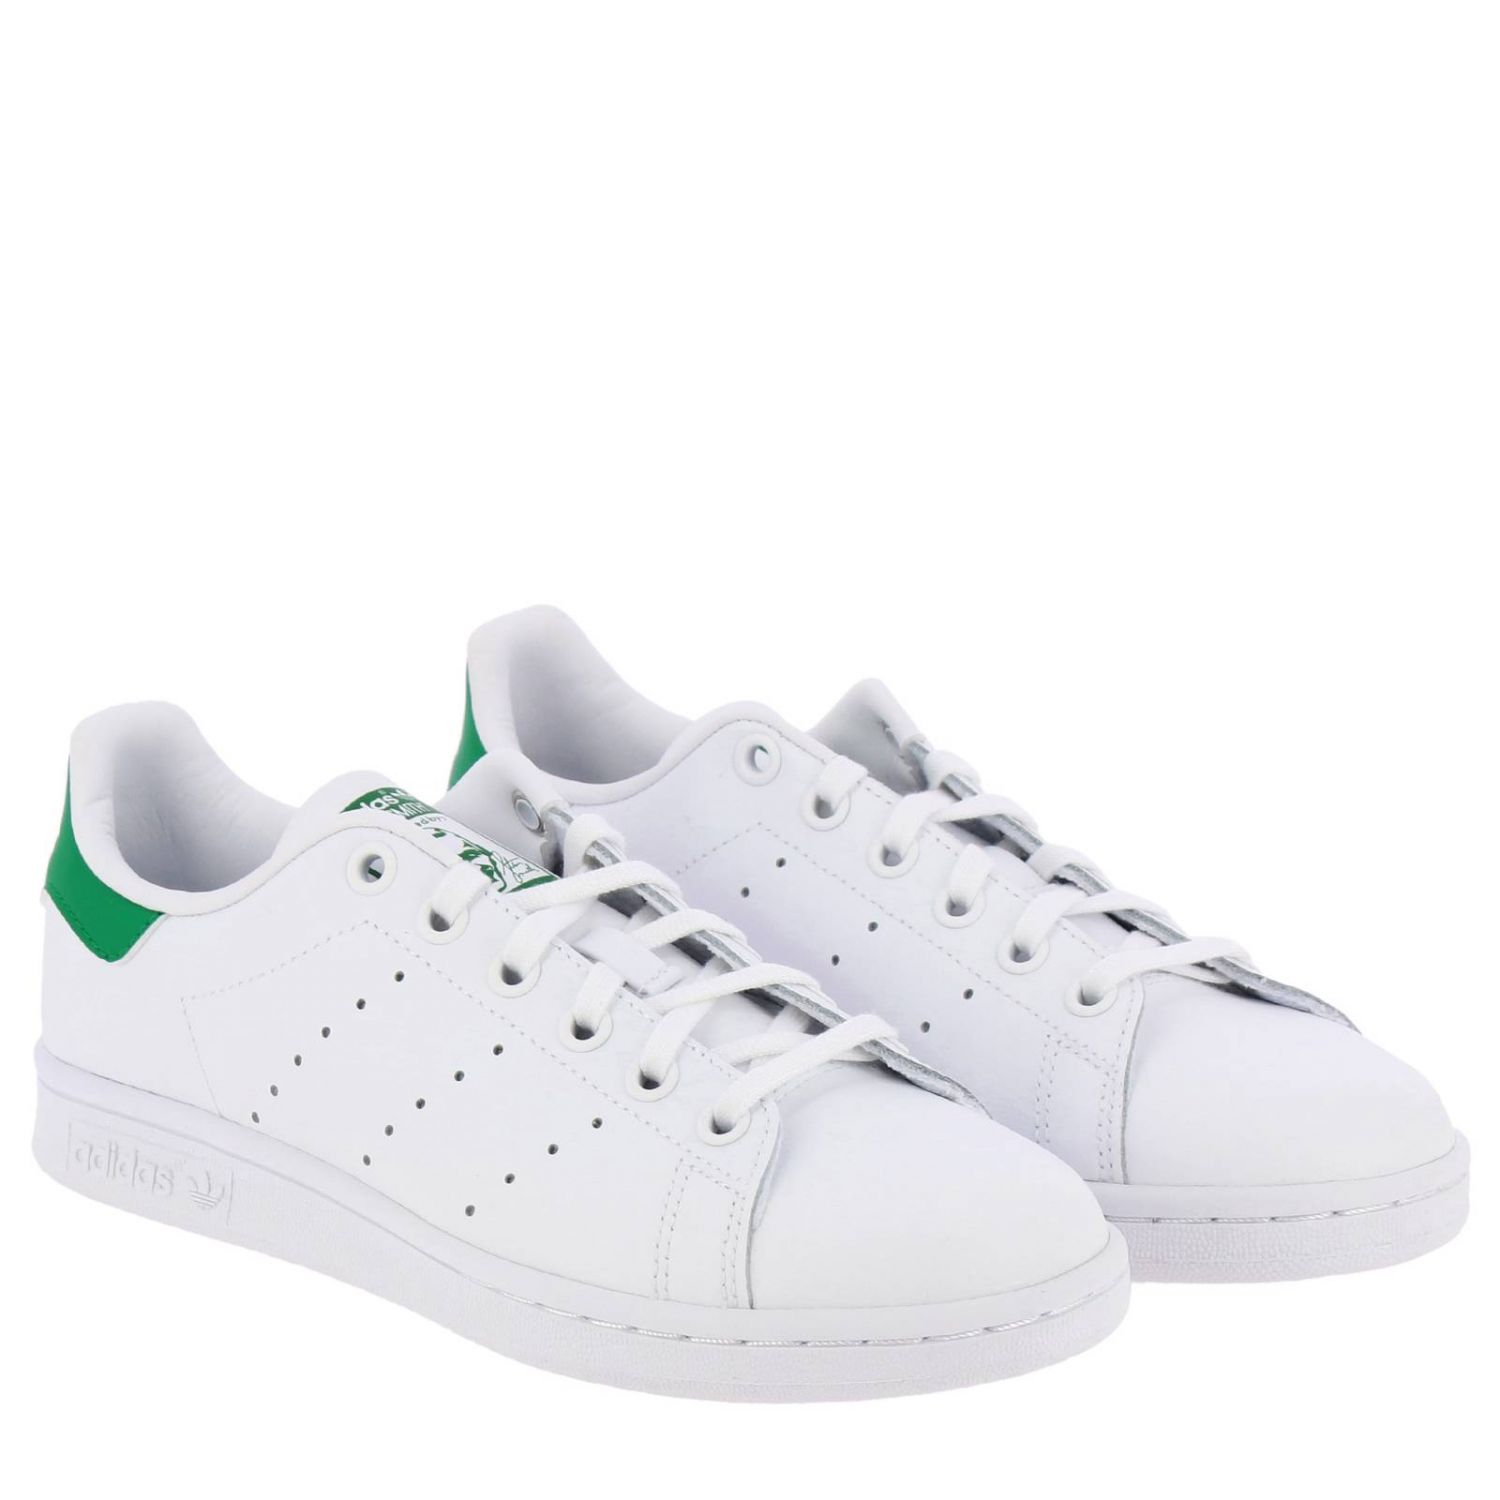 Shoes Adidas Originals: Stan Smith J Adidas Originals Sneakers in smooth leather white 2